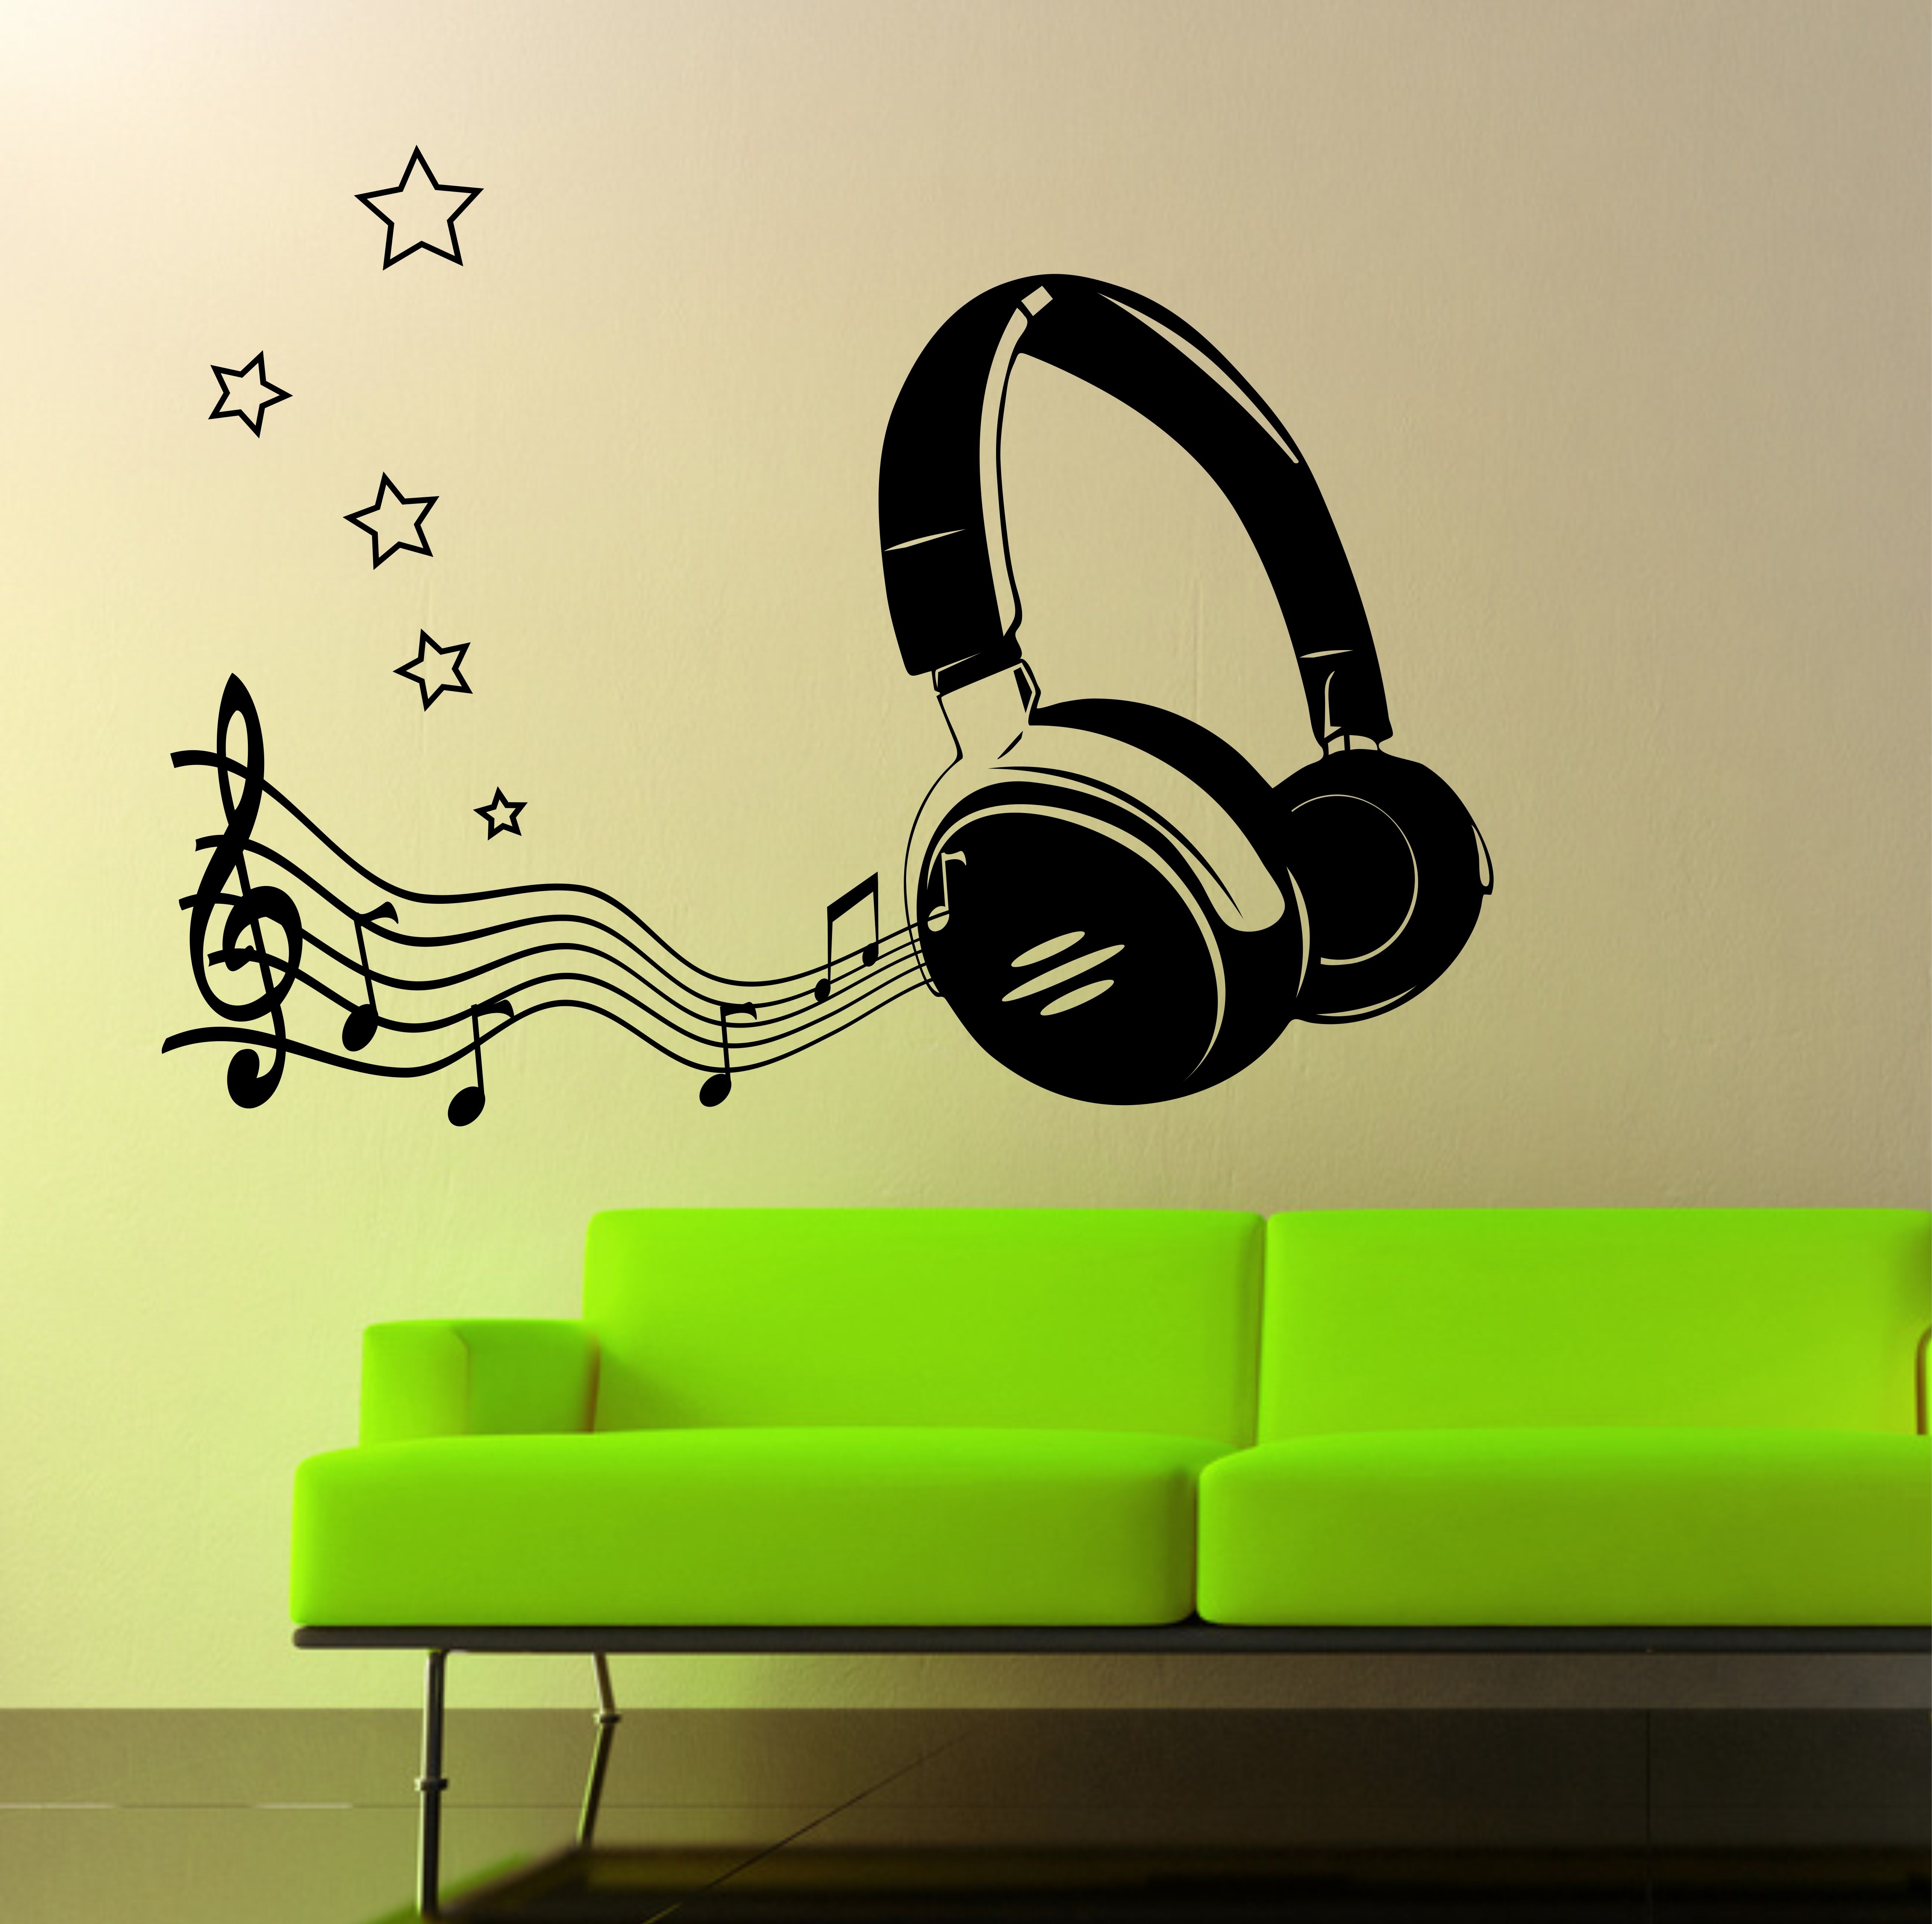 The Grafix Studio | 07 Headphone & Music Notes Wall Art Sticker With Regard To Current Wall Art (Gallery 13 of 15)